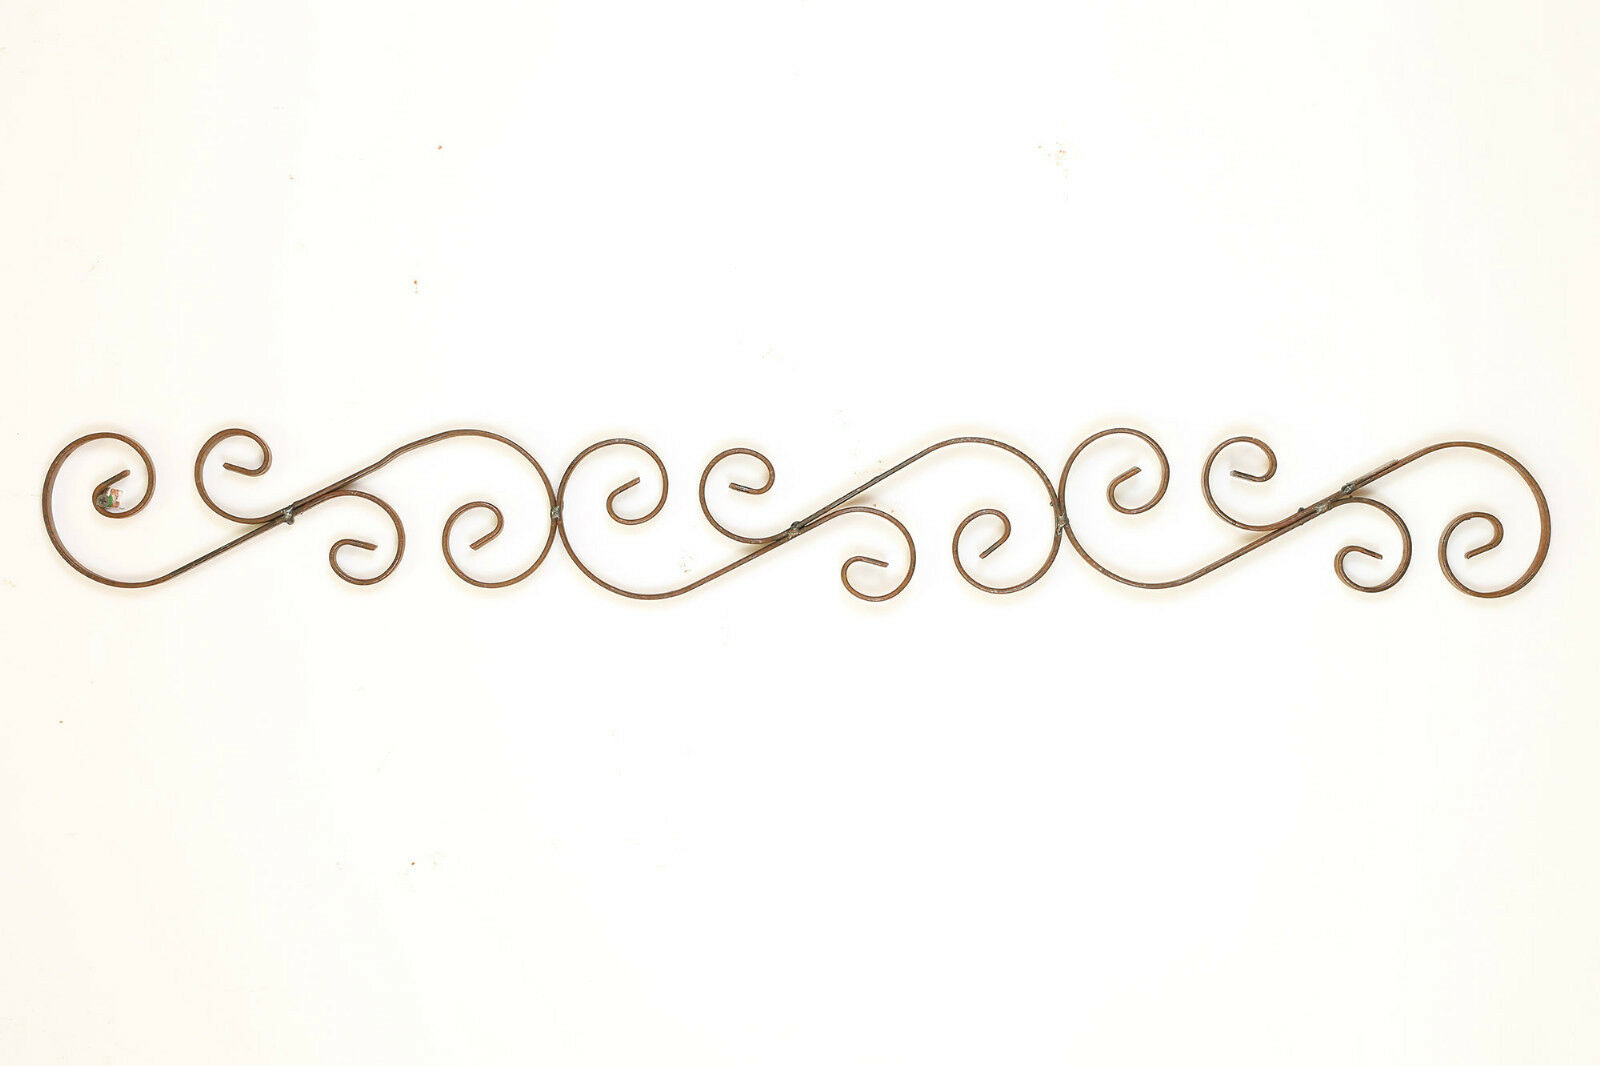 Rustic Iron Architectural Wall Art 56x7 Handmade Iron Door Topper Wrought   1 Of 1Only 4 Available See More